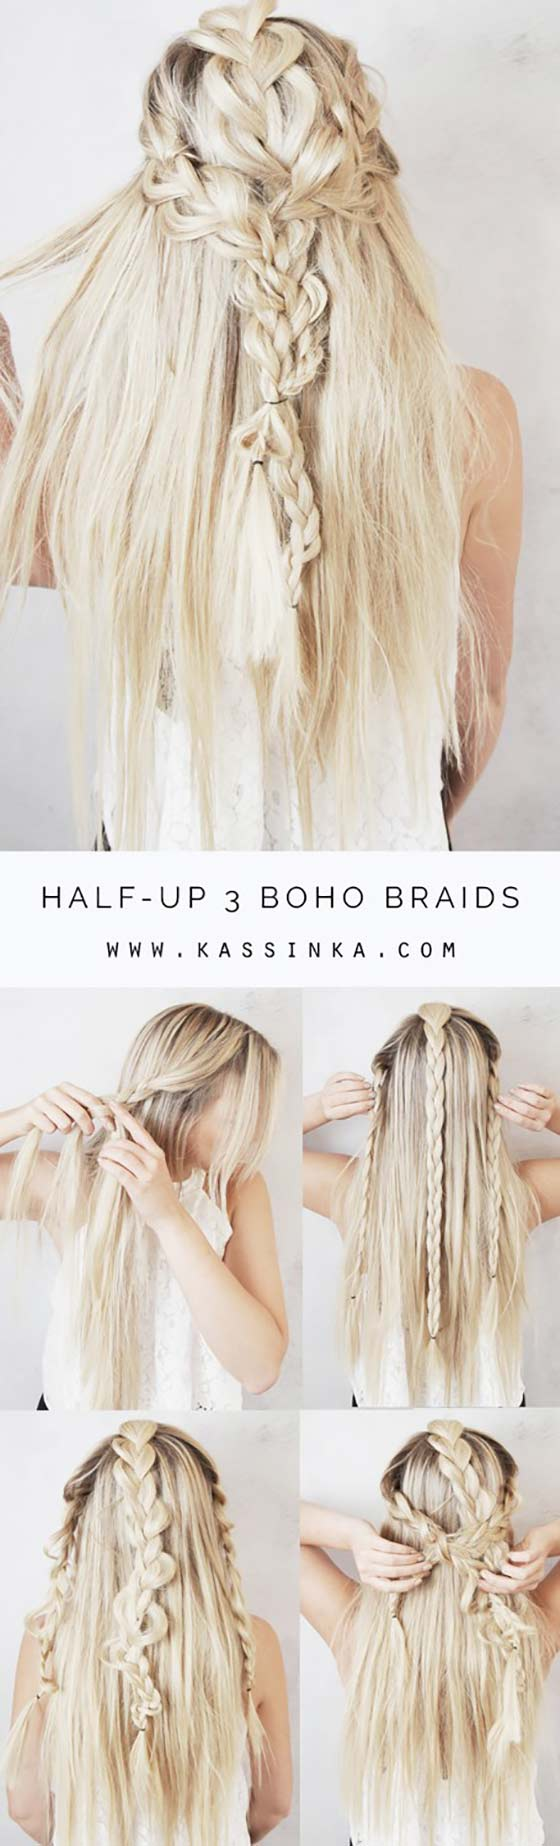 11 Braided Hairstyles For Long Hair